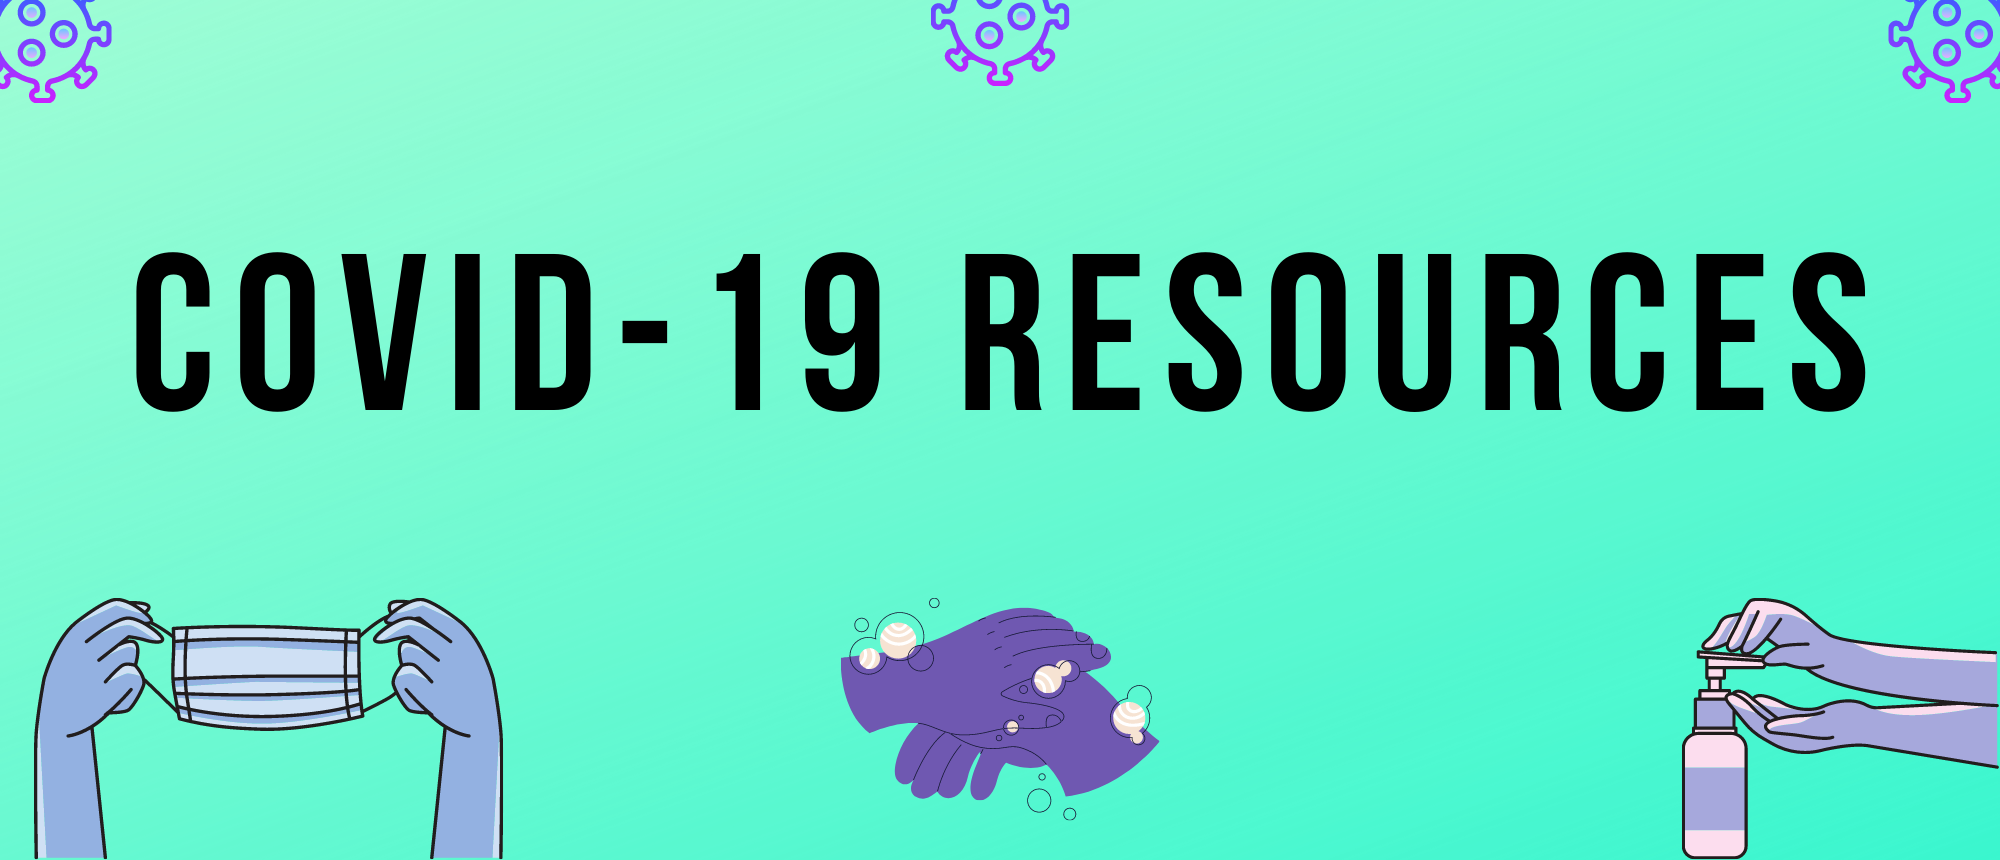 """Bright green background with different graphics scattered including a COVID-19 germ, hands holding a mask, washing hands, and hands pumping sanitizer. In the center in big bold text """"COVID-19 RESOURCES"""""""